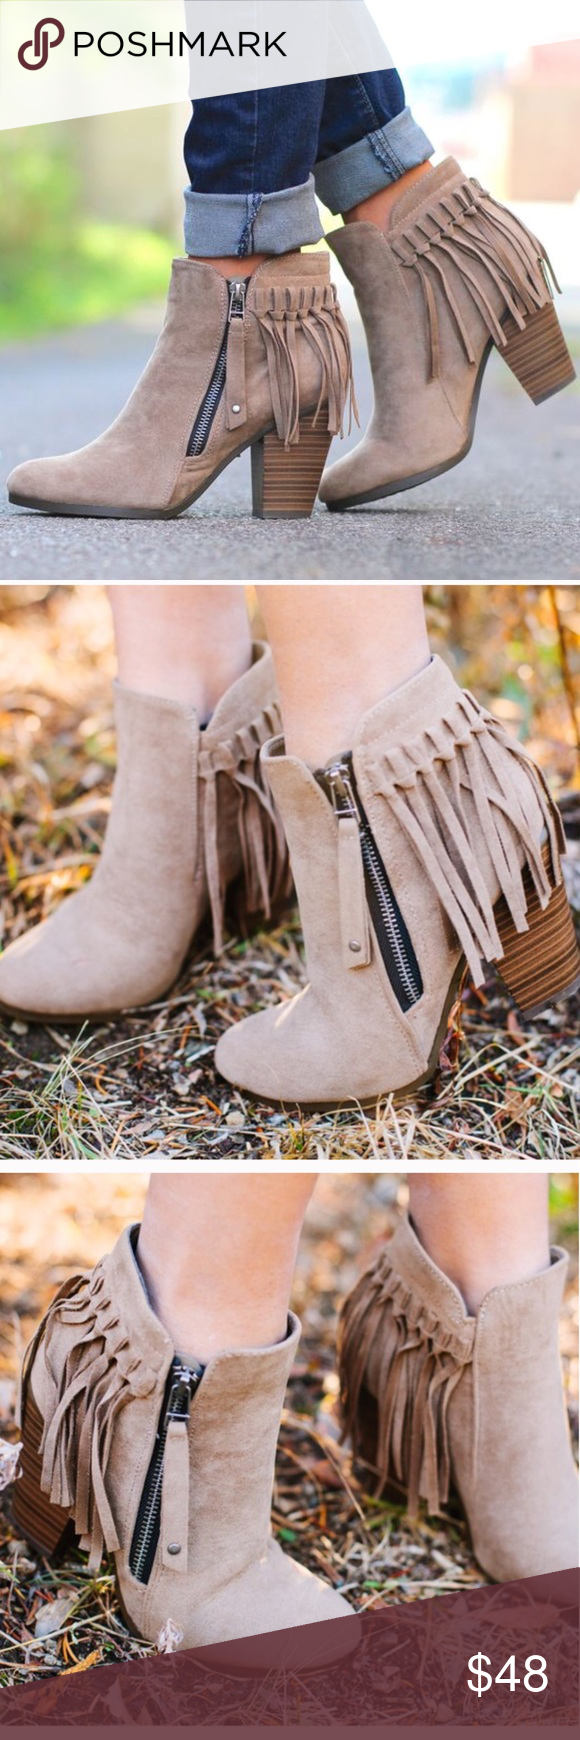 """🚨1 HR SALE🚨Hello Fall Fringe Bootie - BEIGE Super comfy and chic faux suede fringe bootie. Fits TRUE TO SIZE. Faux suede with fringe behind heel. Working side zipper.   ~Material: Faux Suede (man-made) ~Sole: Synthetic Measurement Heel Height: 3"""" (approx) Shaft Length: 6.75"""" (including heel)  NO TRADE, PRICE FIRM Bellanblue Shoes"""